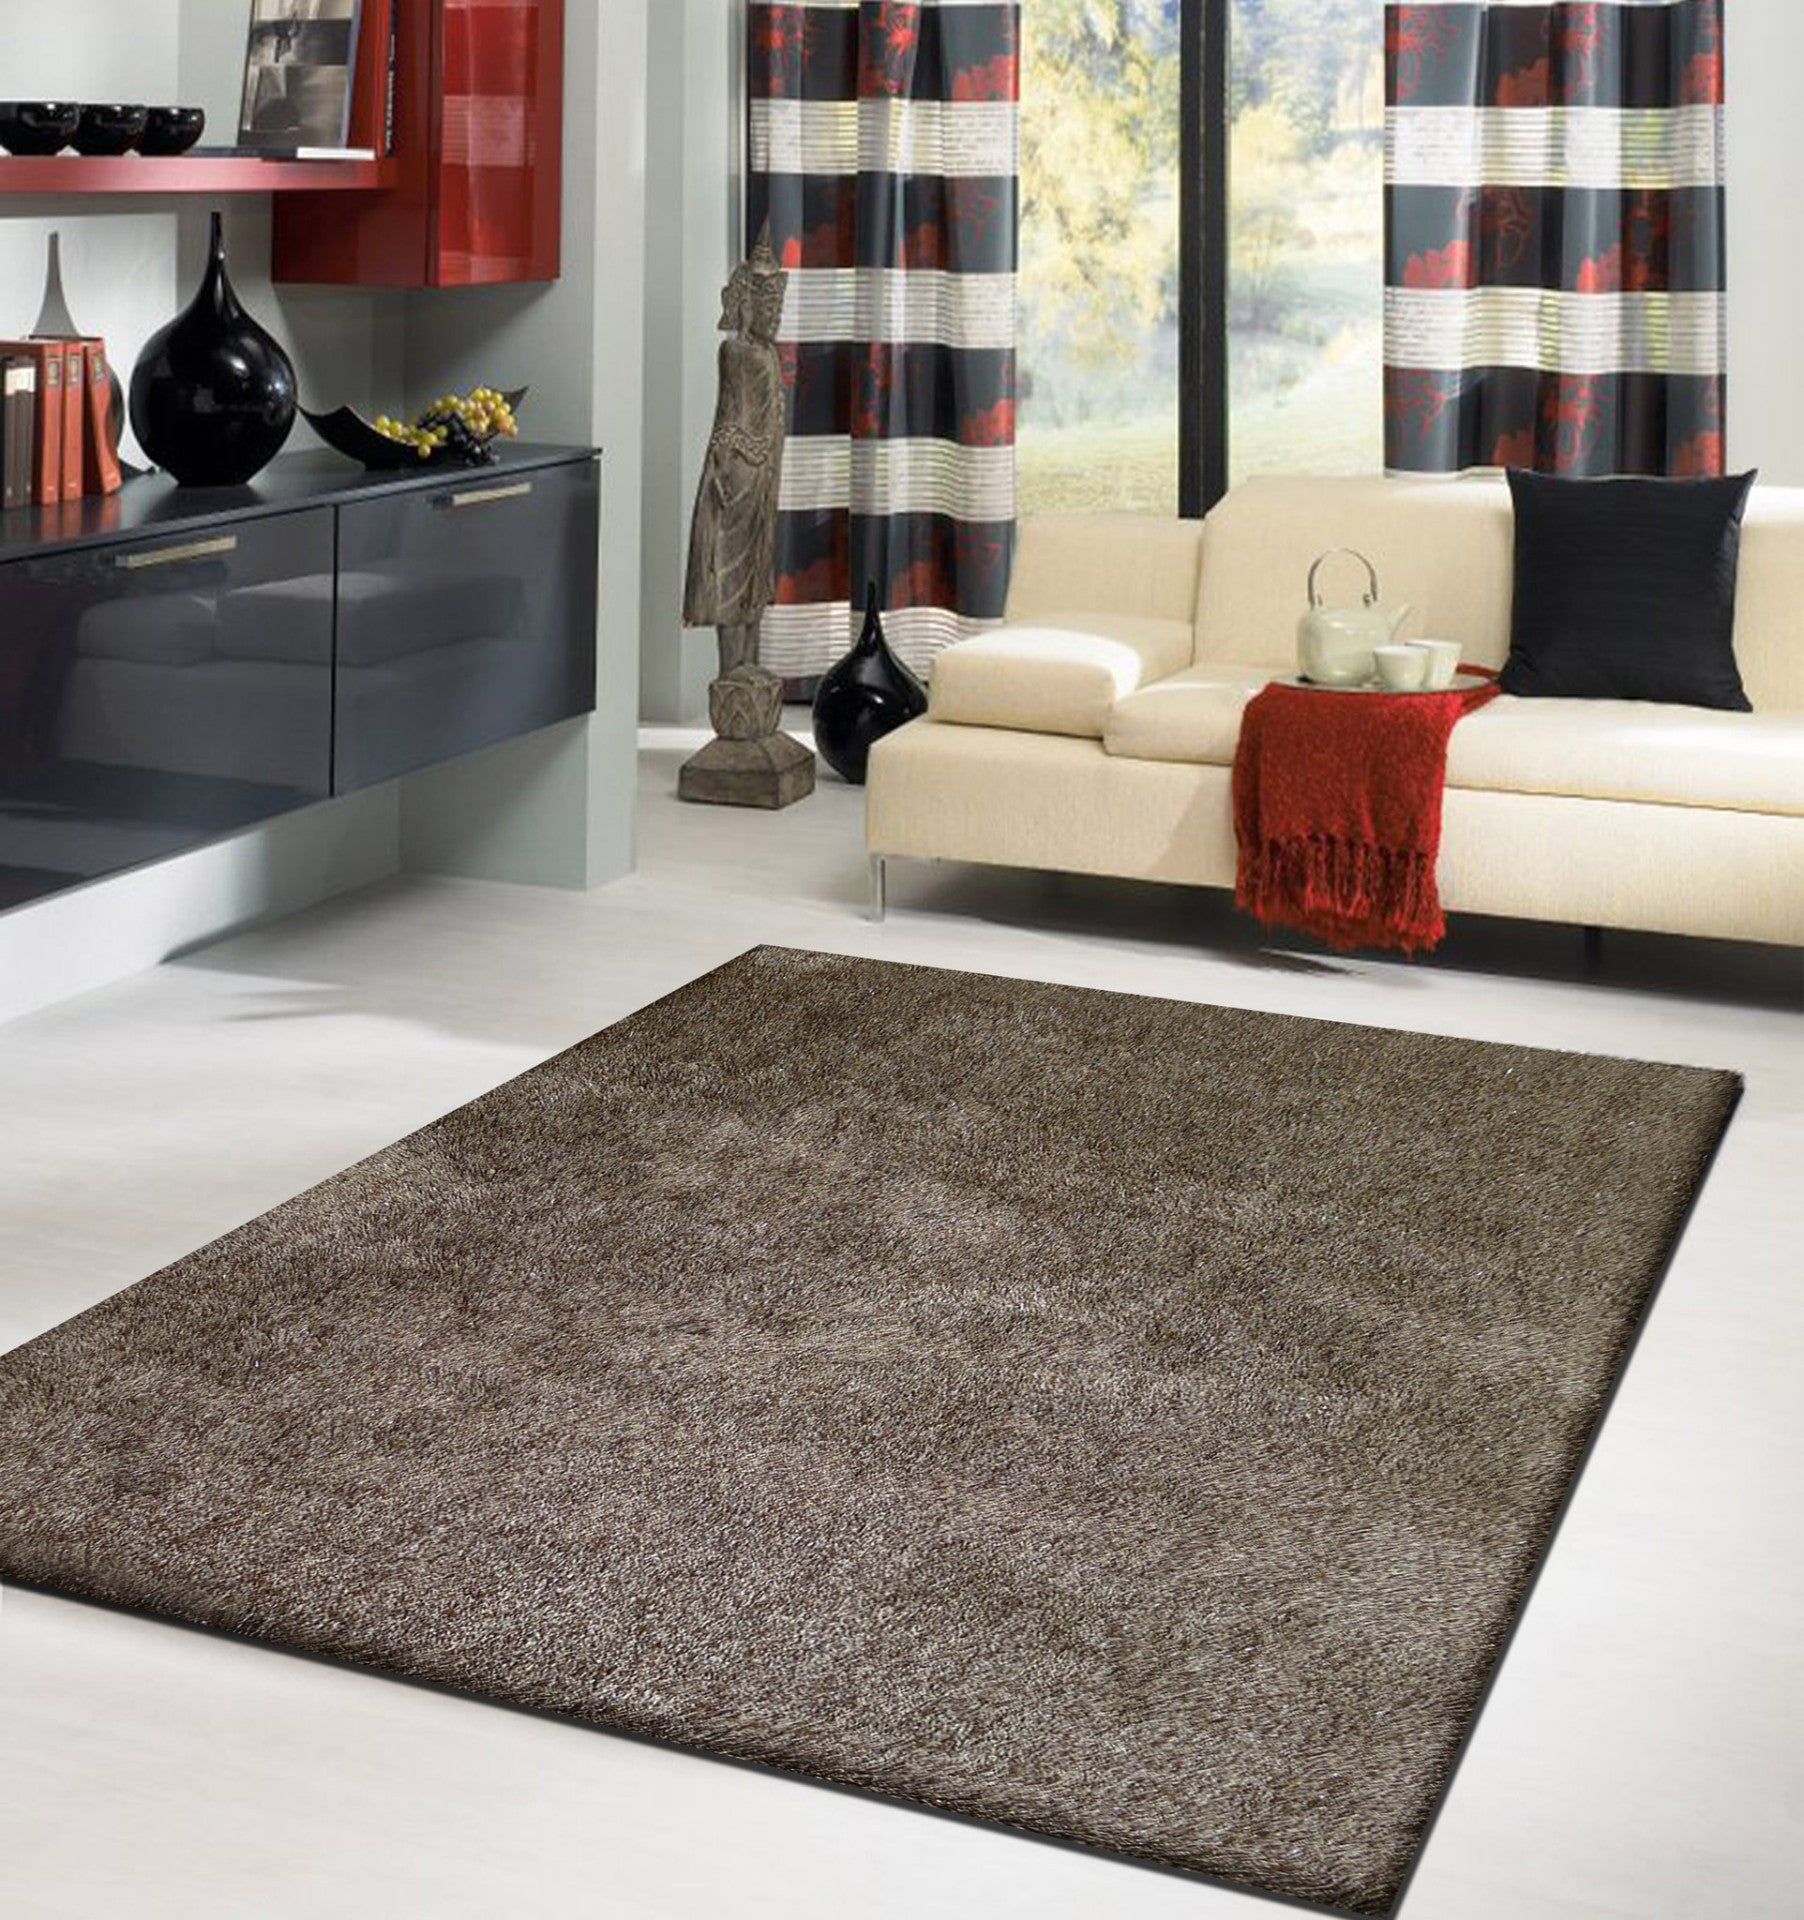 2tone brown long soft durable shag area rug 5u0027 x 7u0027 ft - Shag Area Rug